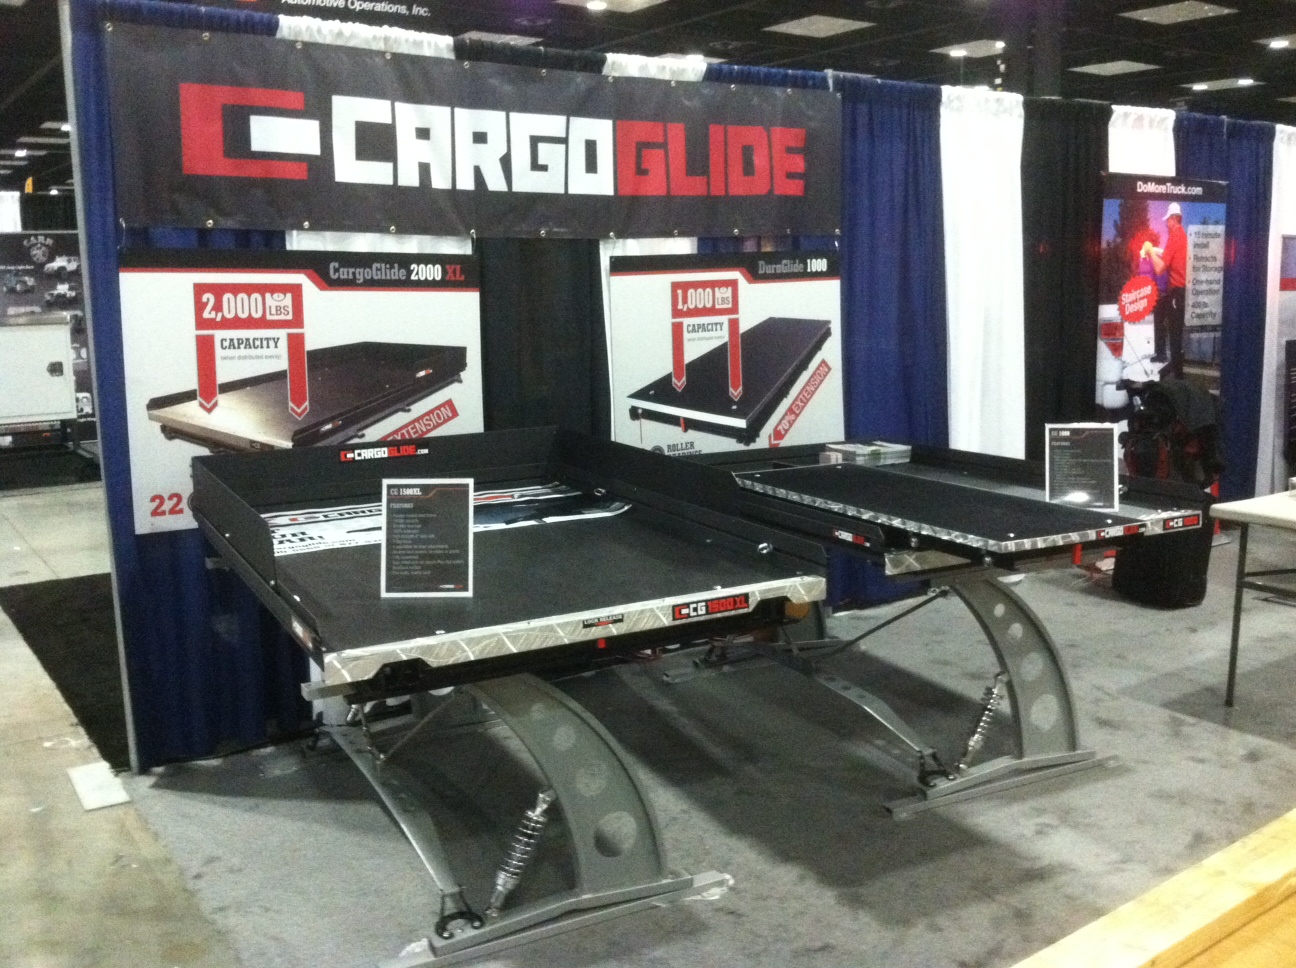 CargoGlide at NTEA 2013